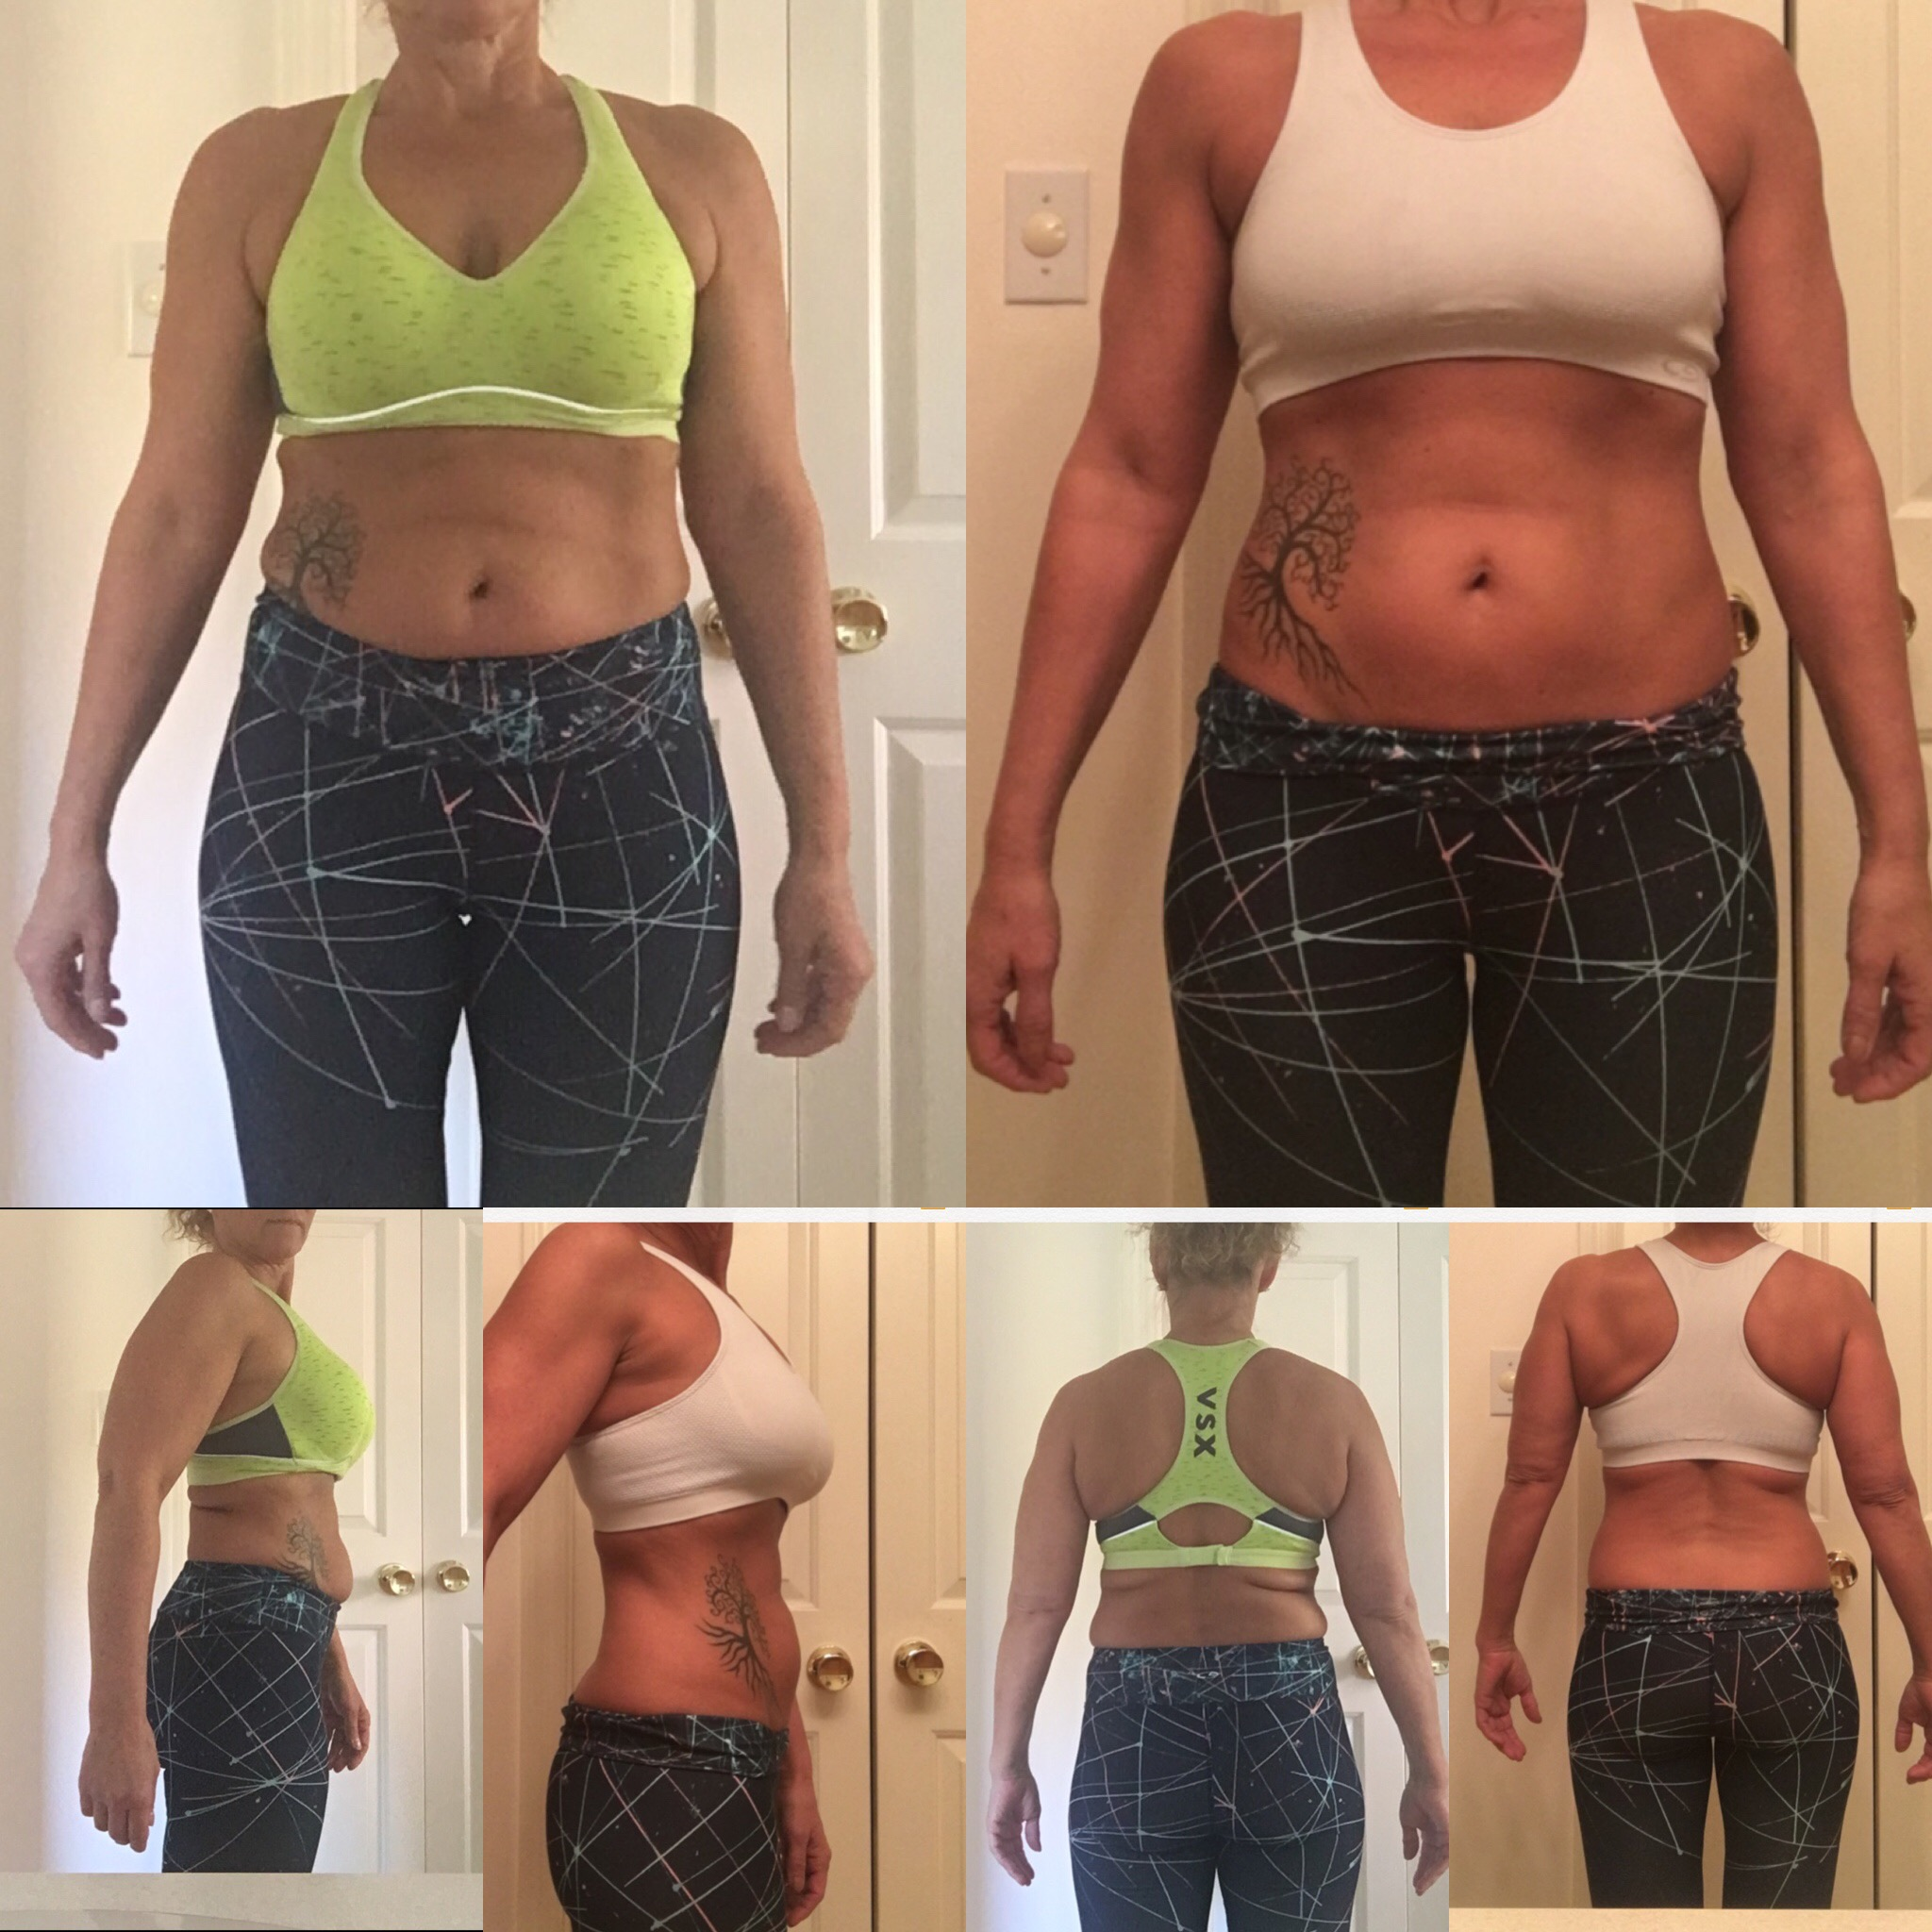 Incredible 8-week transformation from training with our elite fitness trainer, Thor Lampman: She lost 23 lbs and 21 inches!! - This was all attained from a combination of personal training twice a week, 3 days a week of working out on her own, and of course... healthy eating! The most amazing goals can be achieved if you work hard, stay focused, and remain consistent.